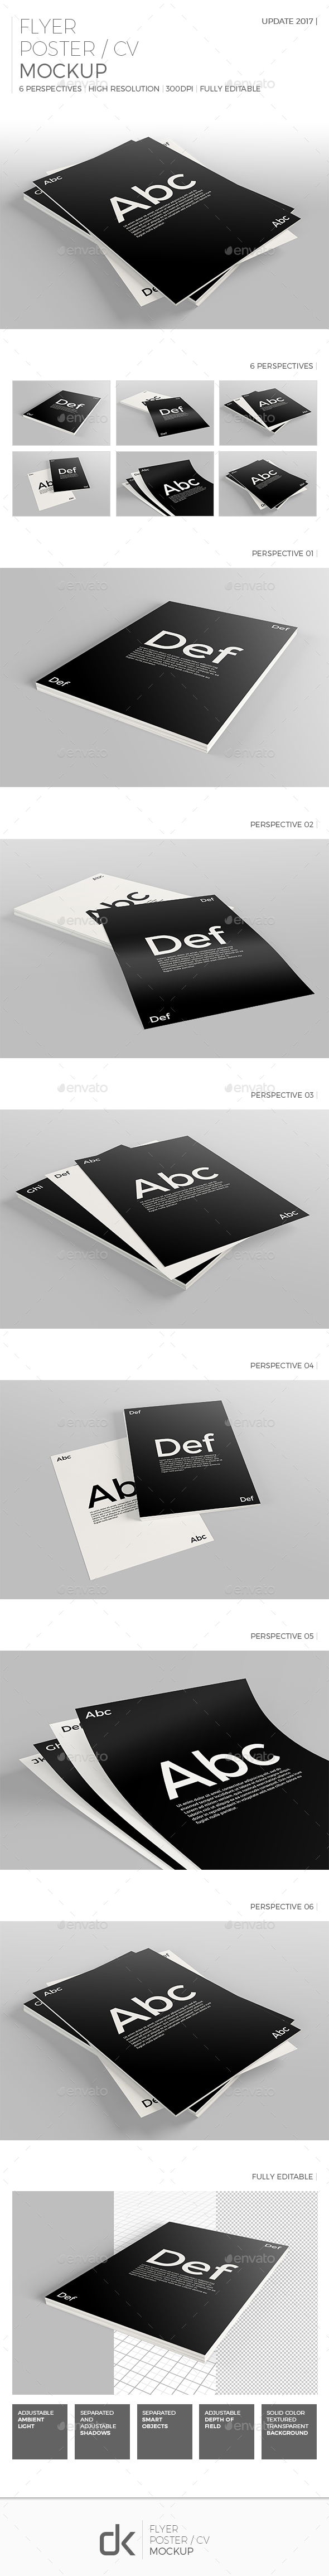 Flyer Mockups From Graphicriver Page 4